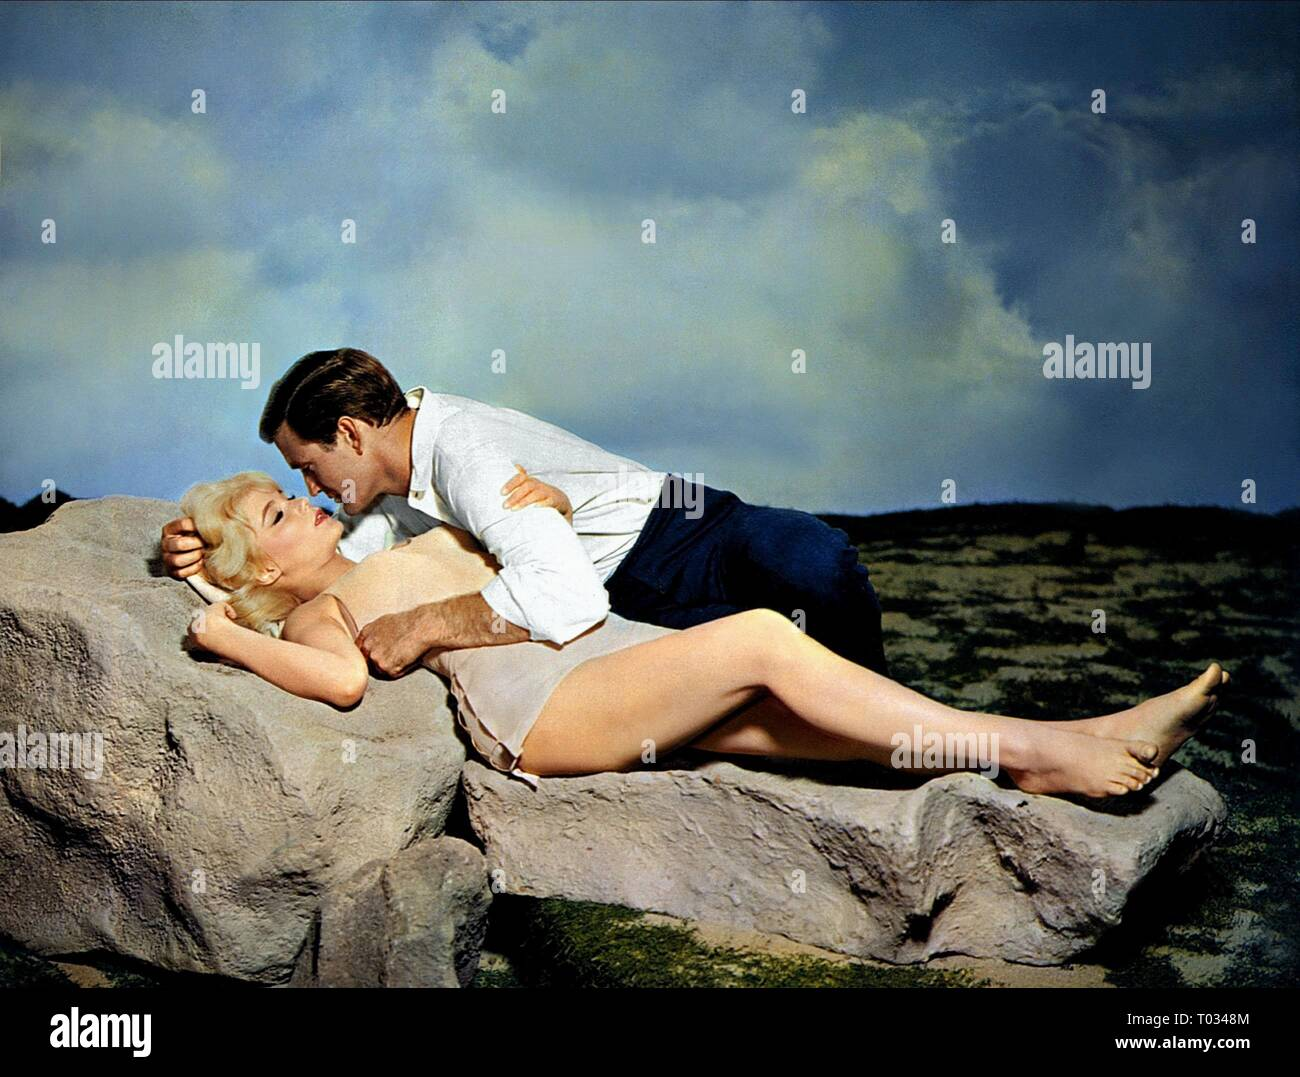 THE TIME MACHINE, ROD TAYLOR , YVETTE MIMIEUX, 1960 - Stock Image